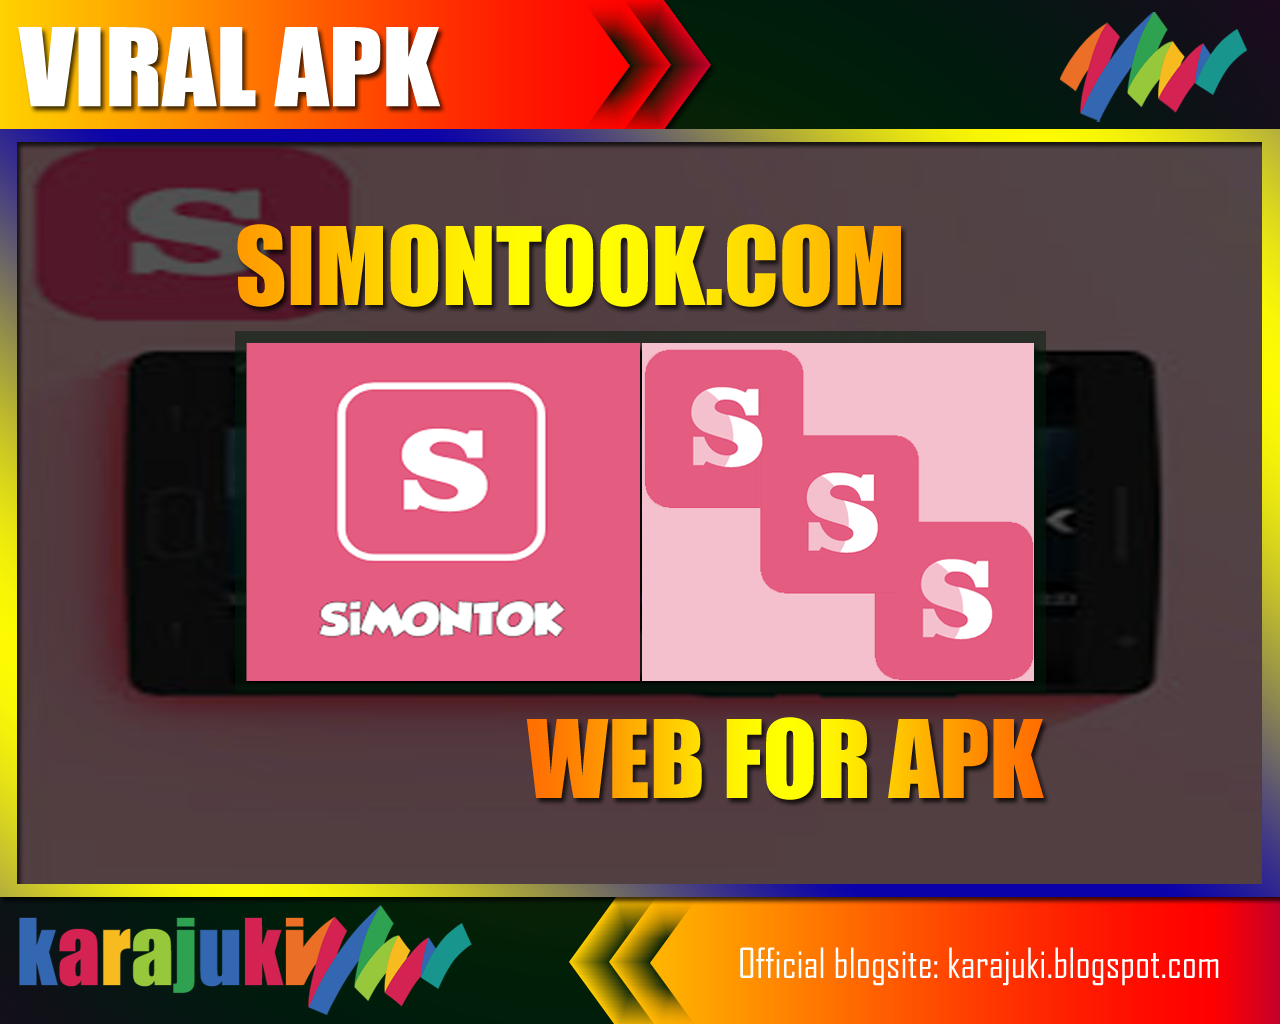 Simontook Com We Are Searching For Simontok Apk On Simontook Com Since 2017 And Until Now We Are Still Come Across Di Situs Web Simonto Webs Android